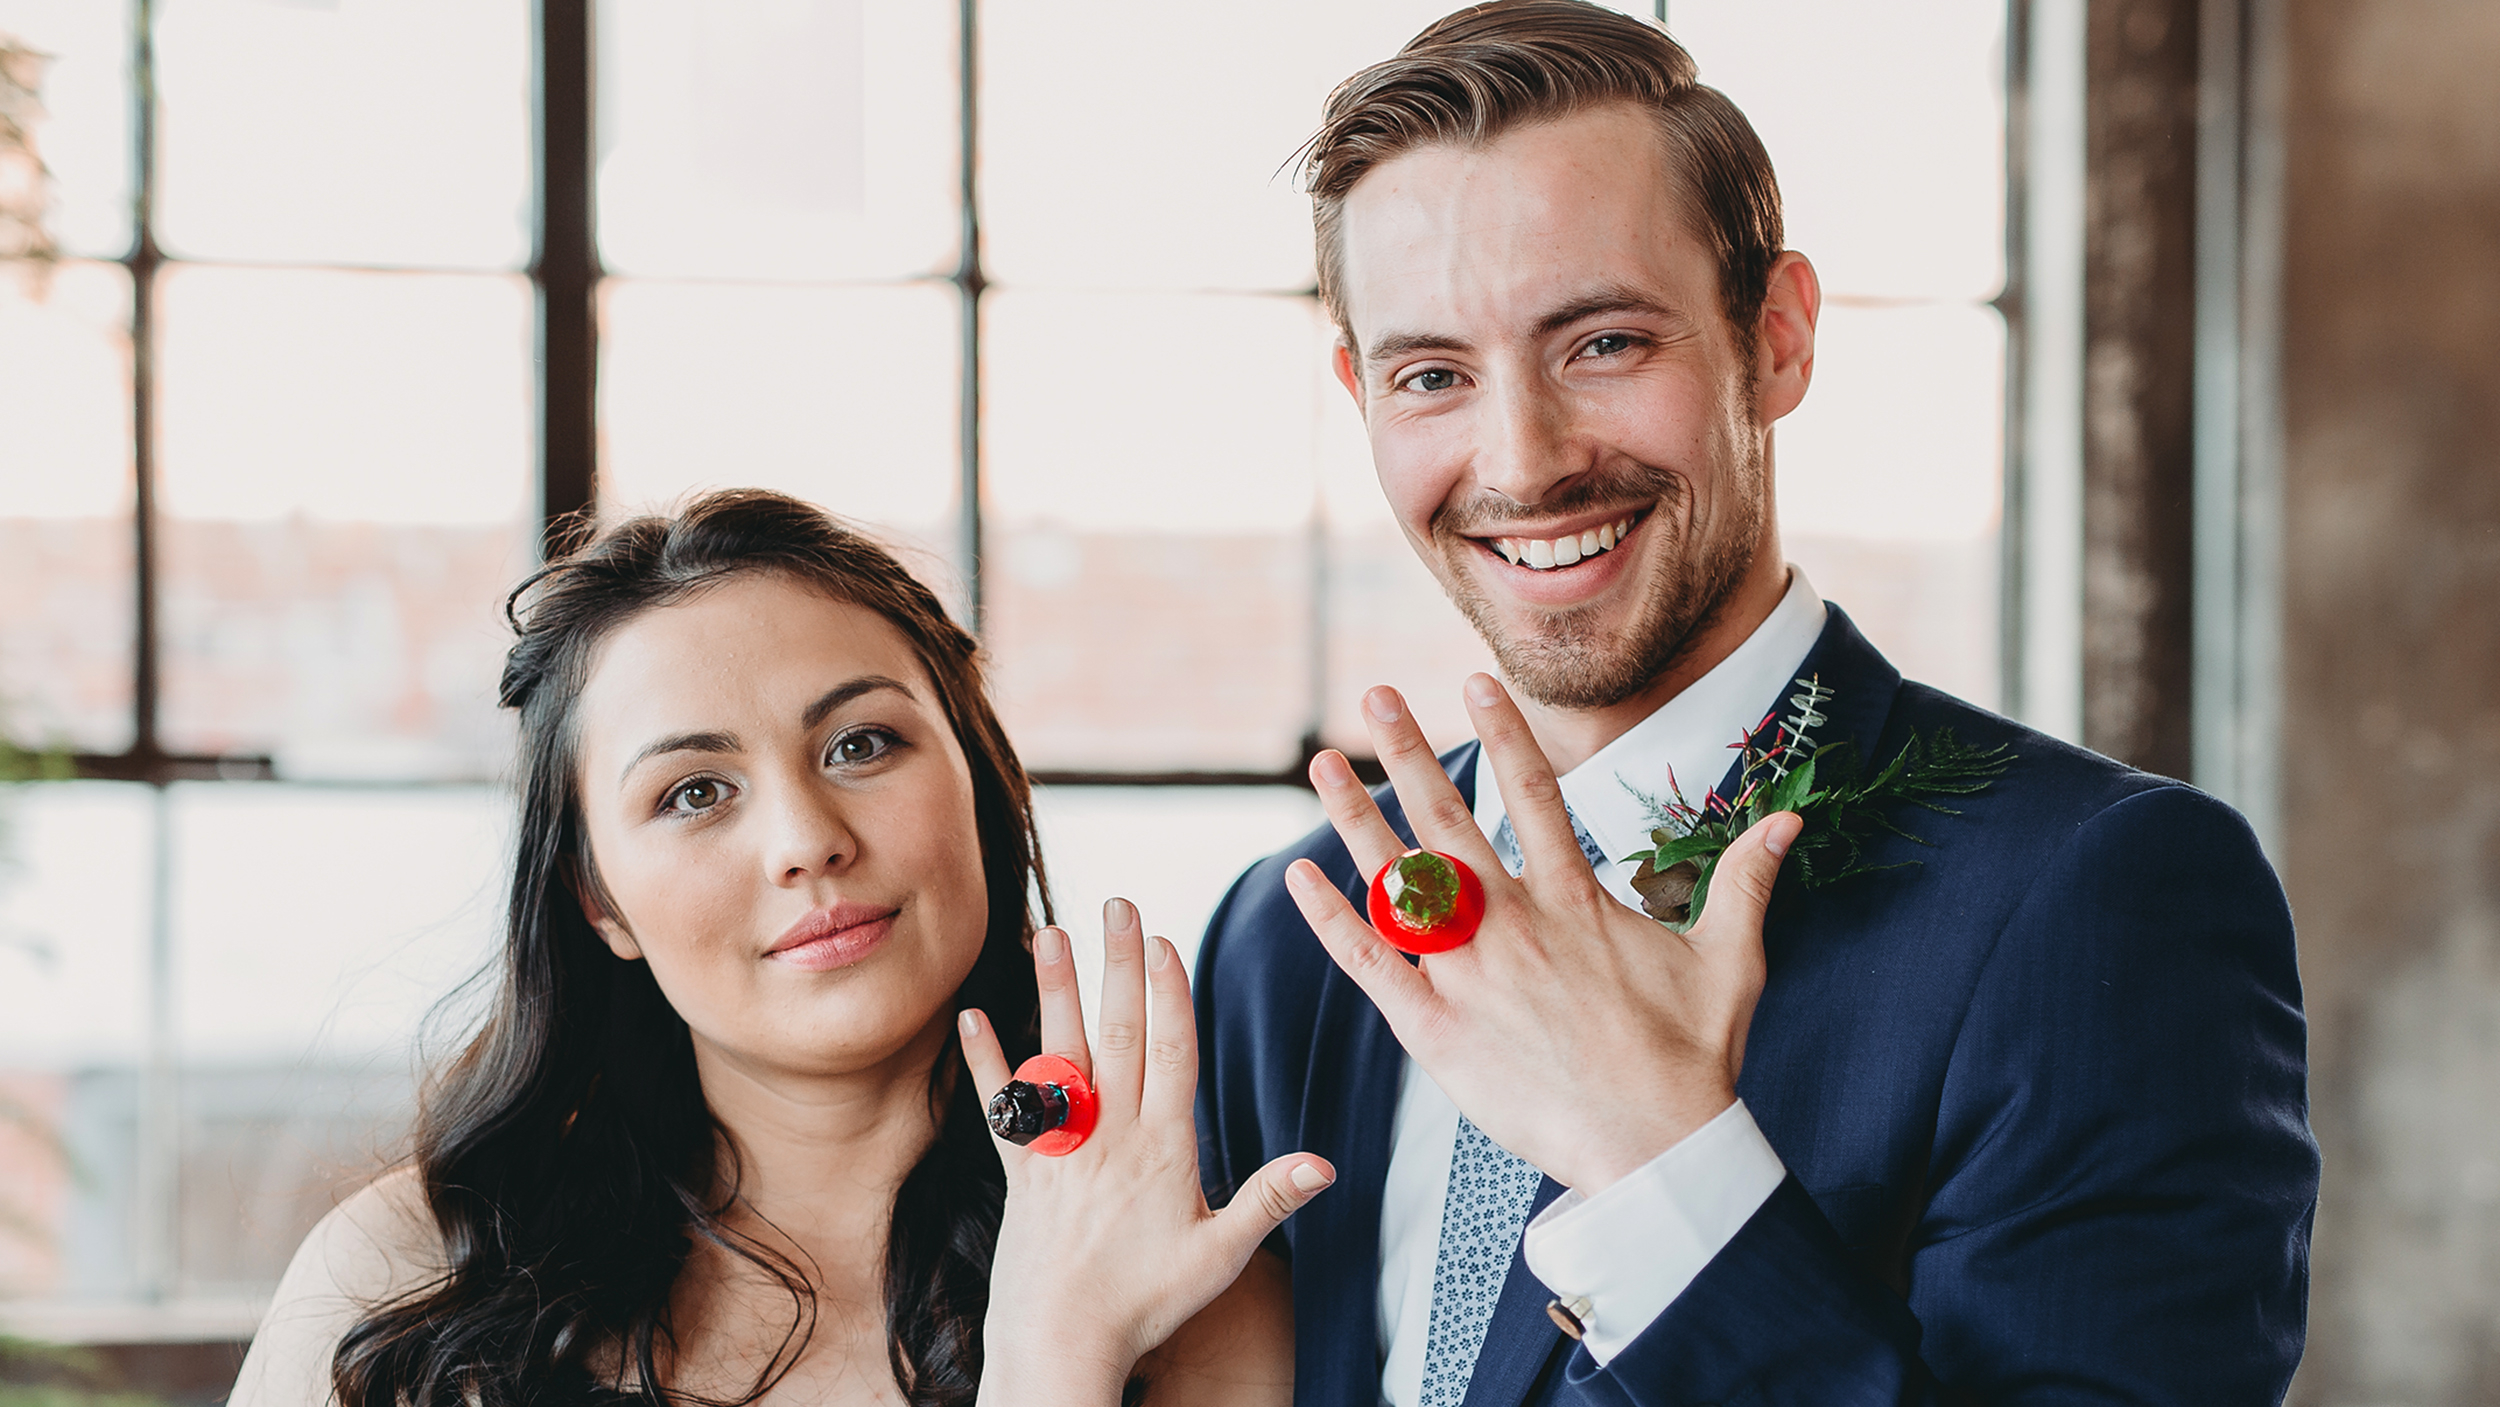 Says I Do With Ring Pops After Their Real Wedding Rings Were Stolen